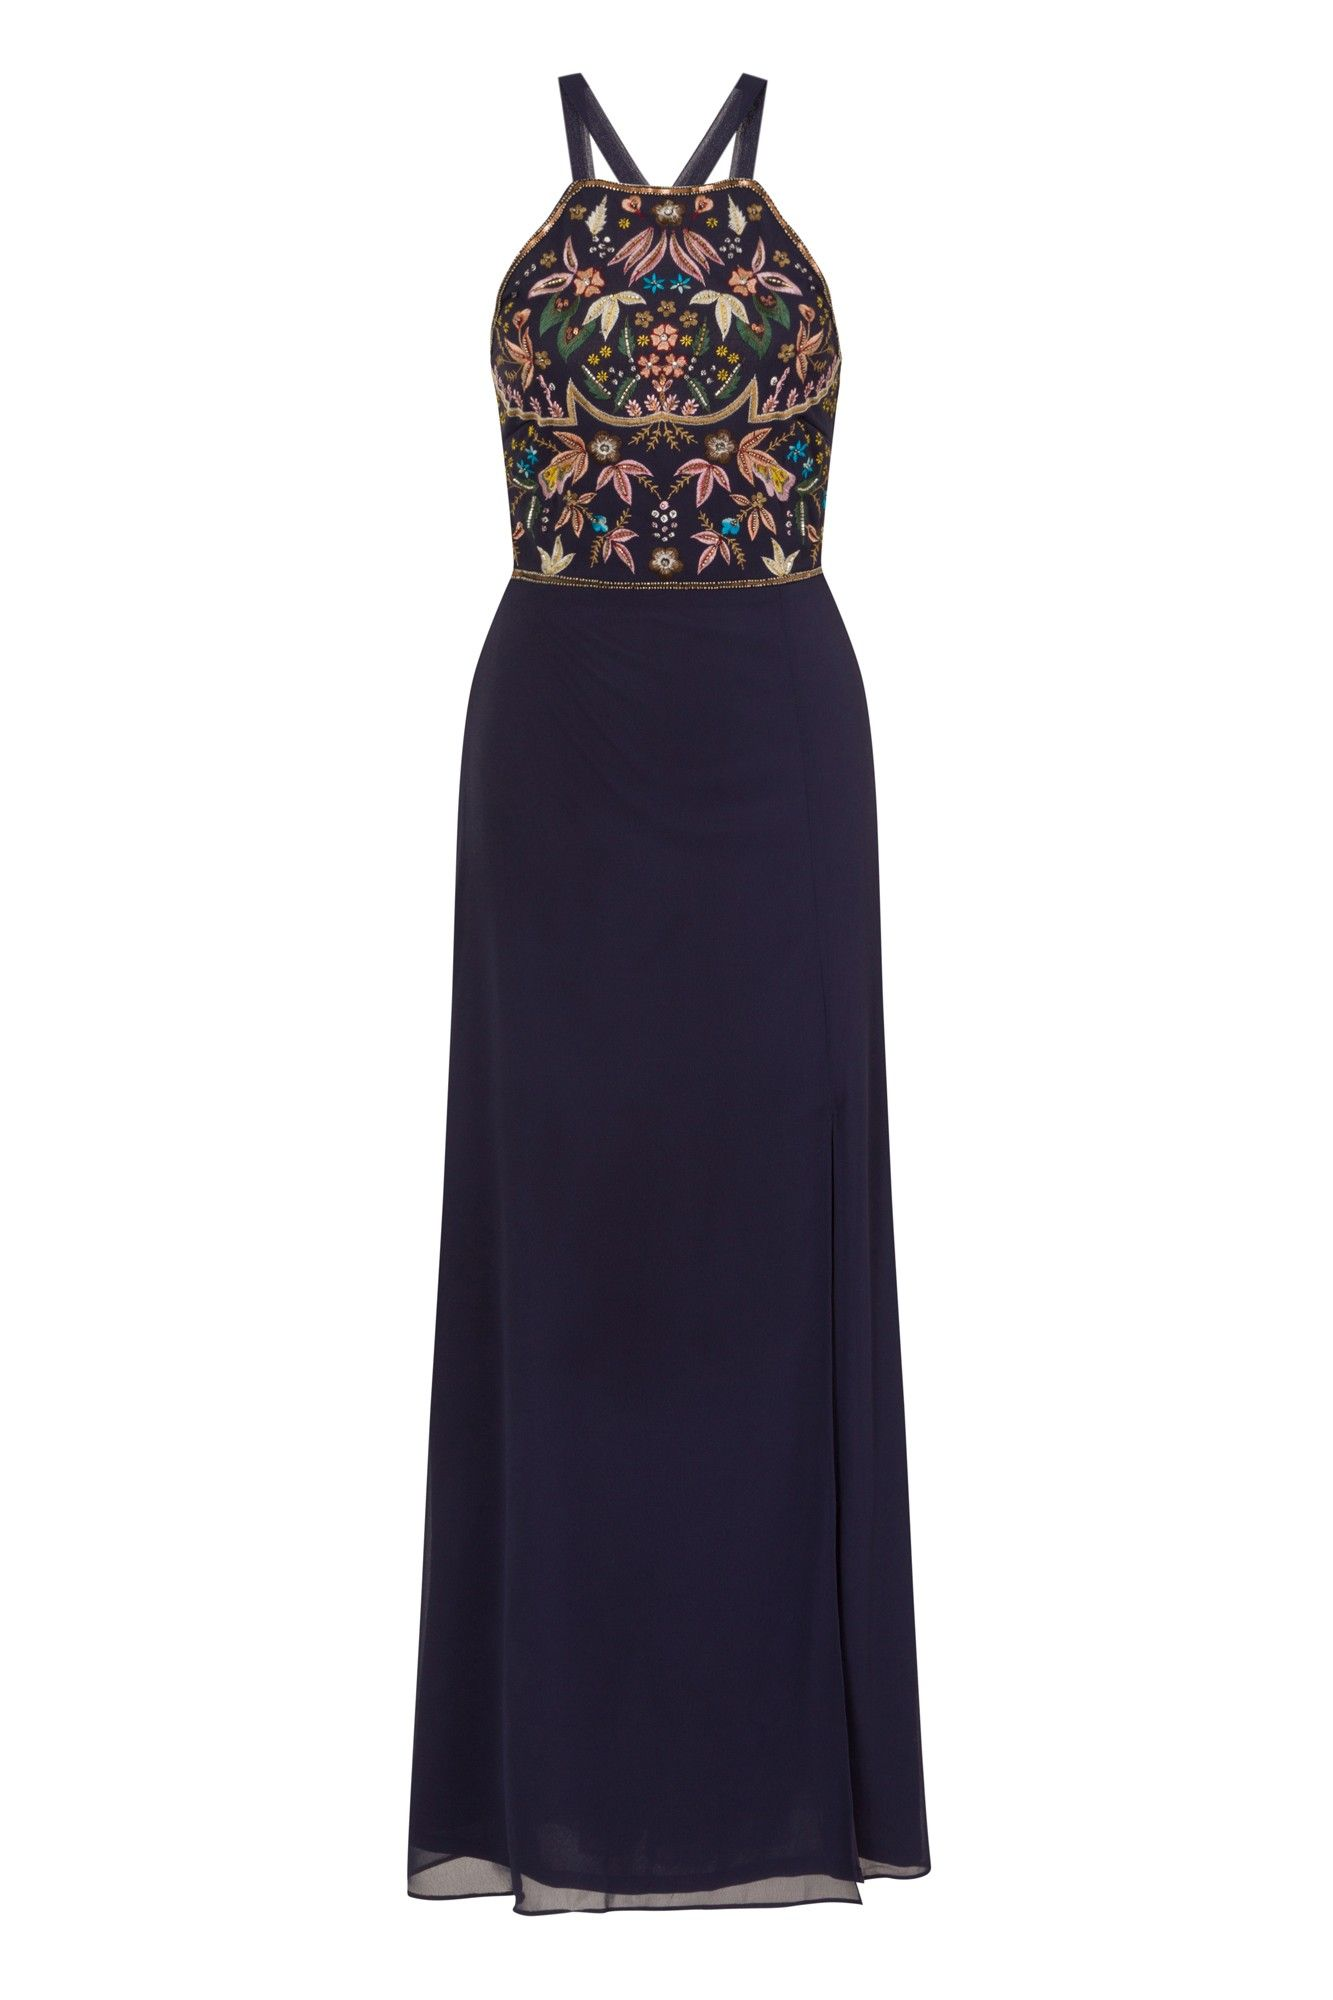 becca719d2 Frock and Frill is a boutique fashion brand for stylish women that brings  originality and bespoke artistry to womenswear. Shop our range of vintage  inspired ...